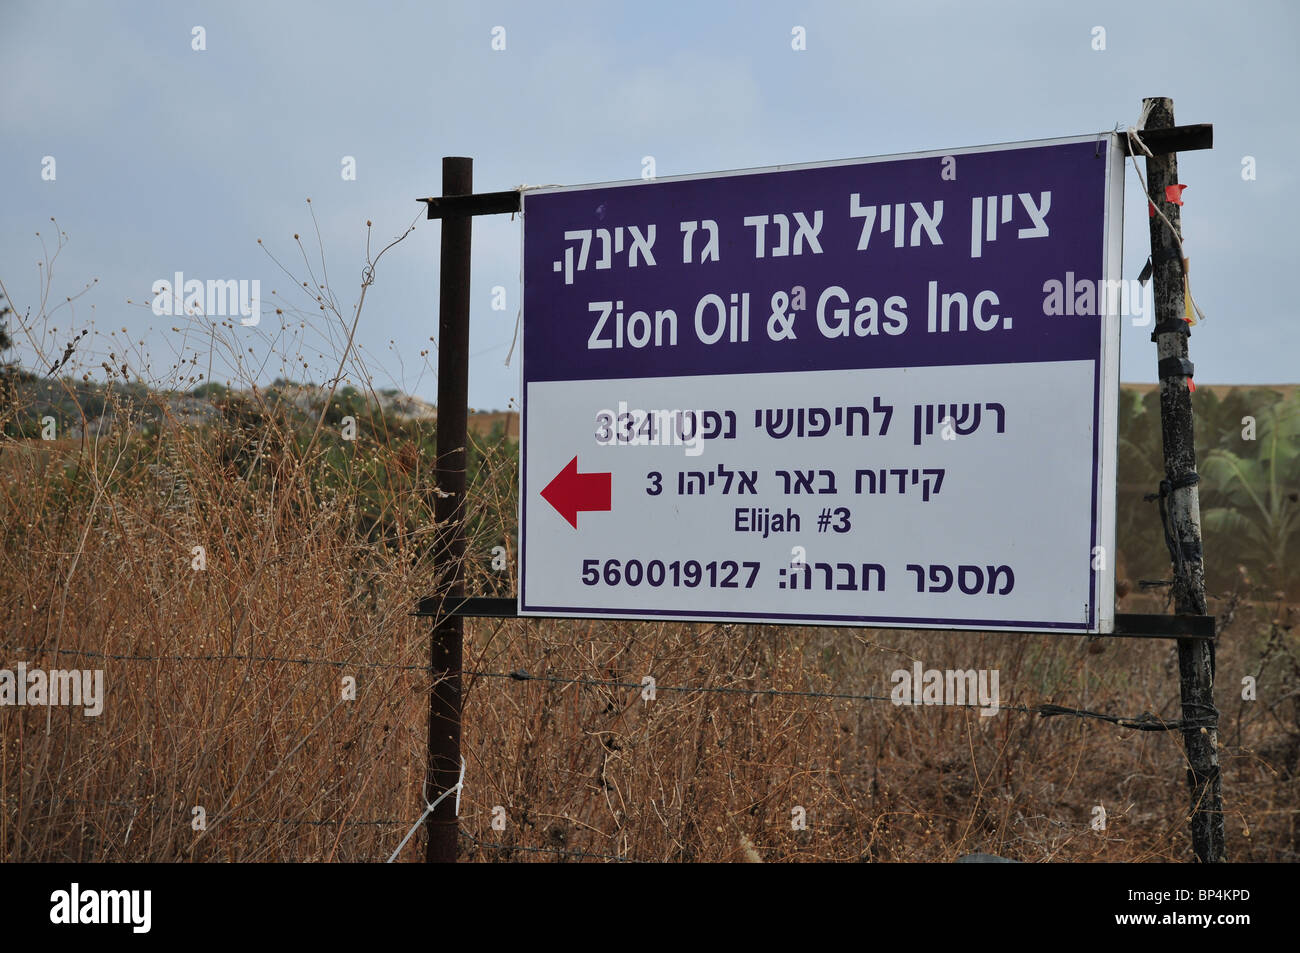 Israel, Zion Oil & Gas Inc. oil exploration site - Stock Image